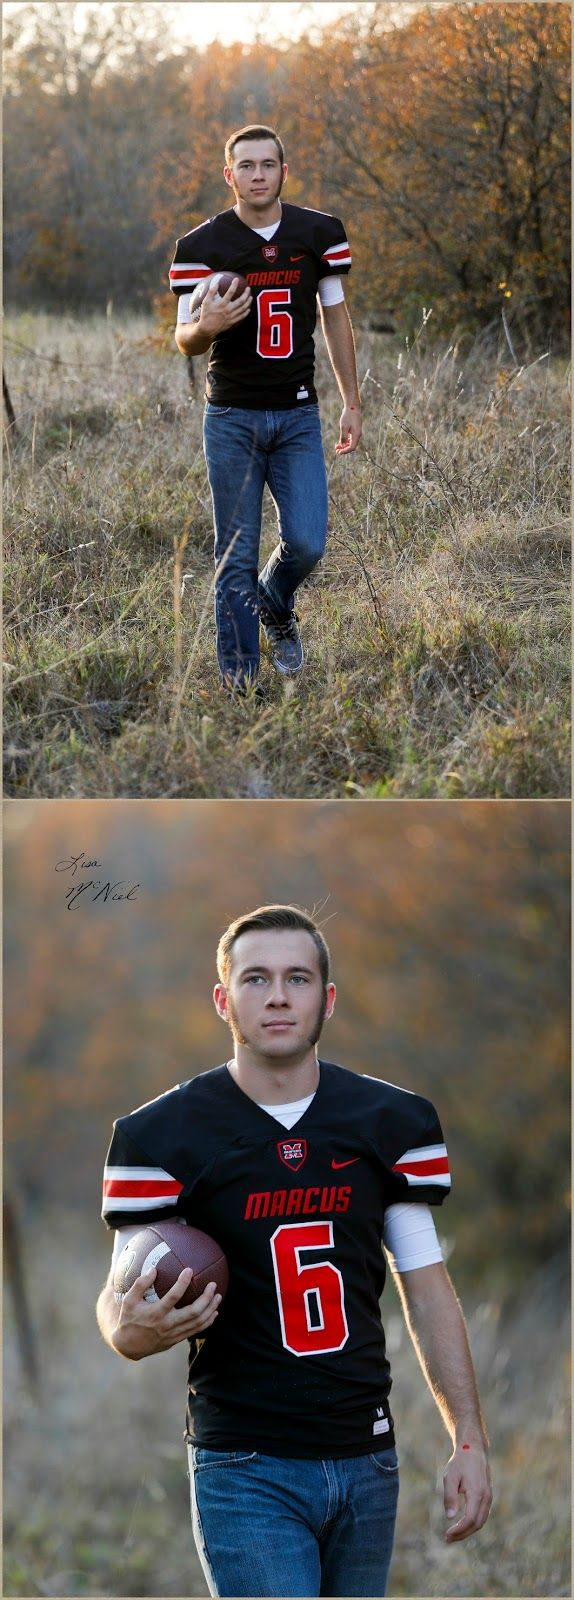 Senior Pictures with Baylor's Football's New Kicker